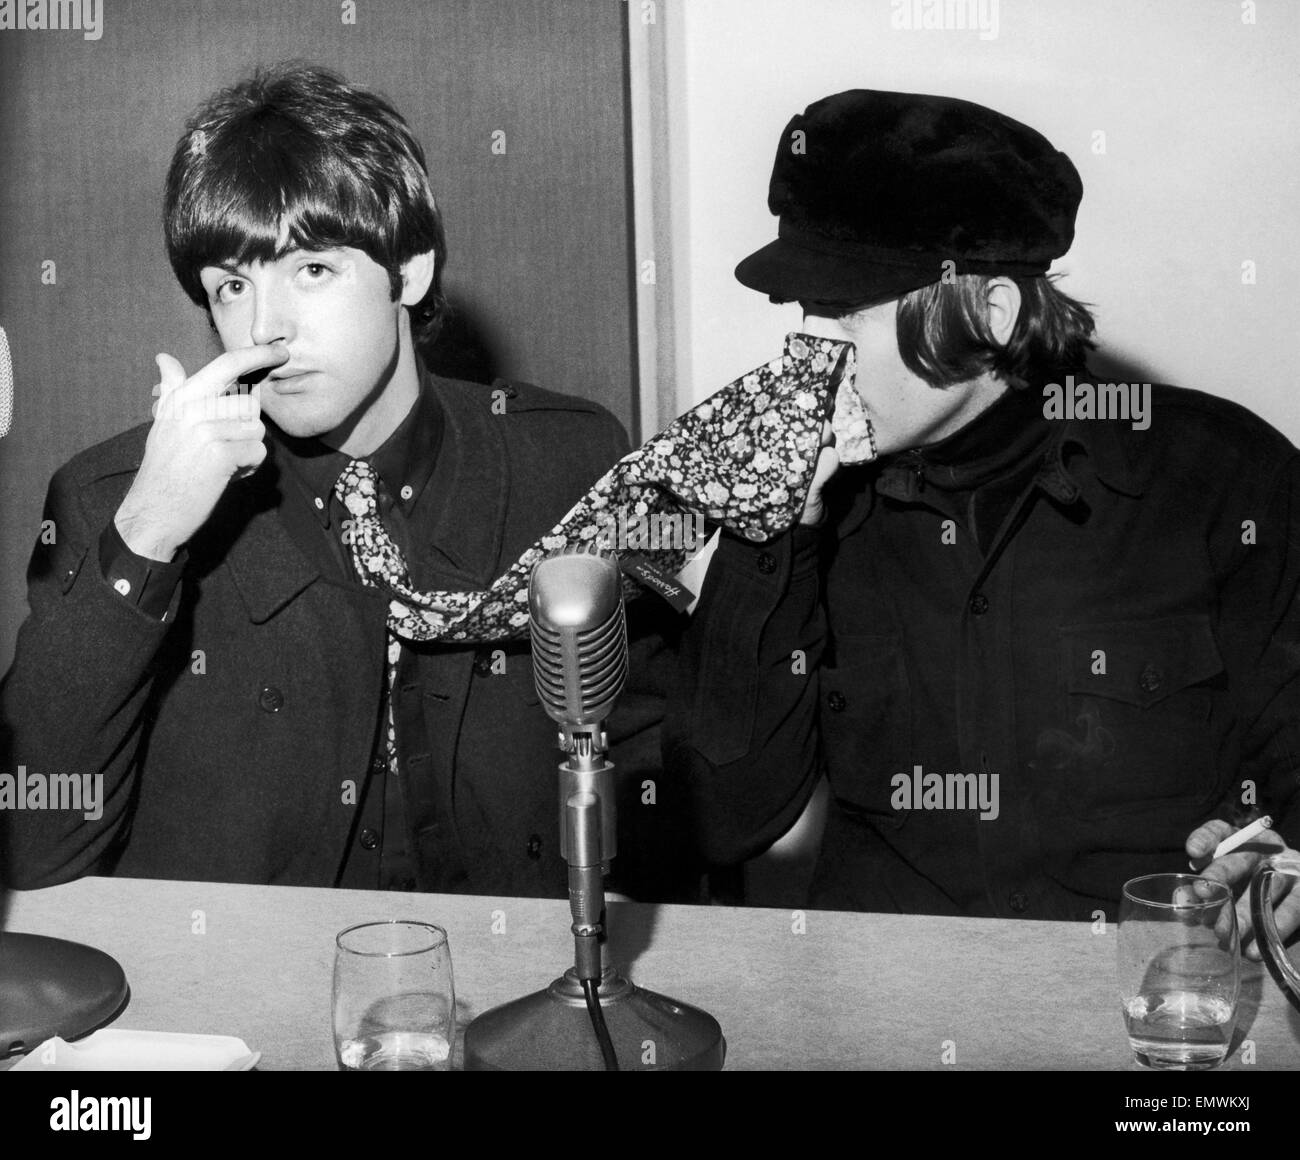 The Beatles Paul McCartney And John Lennon Pictured At A Backstage News Press Conference Odeon In Glasgow 3rd December 1965